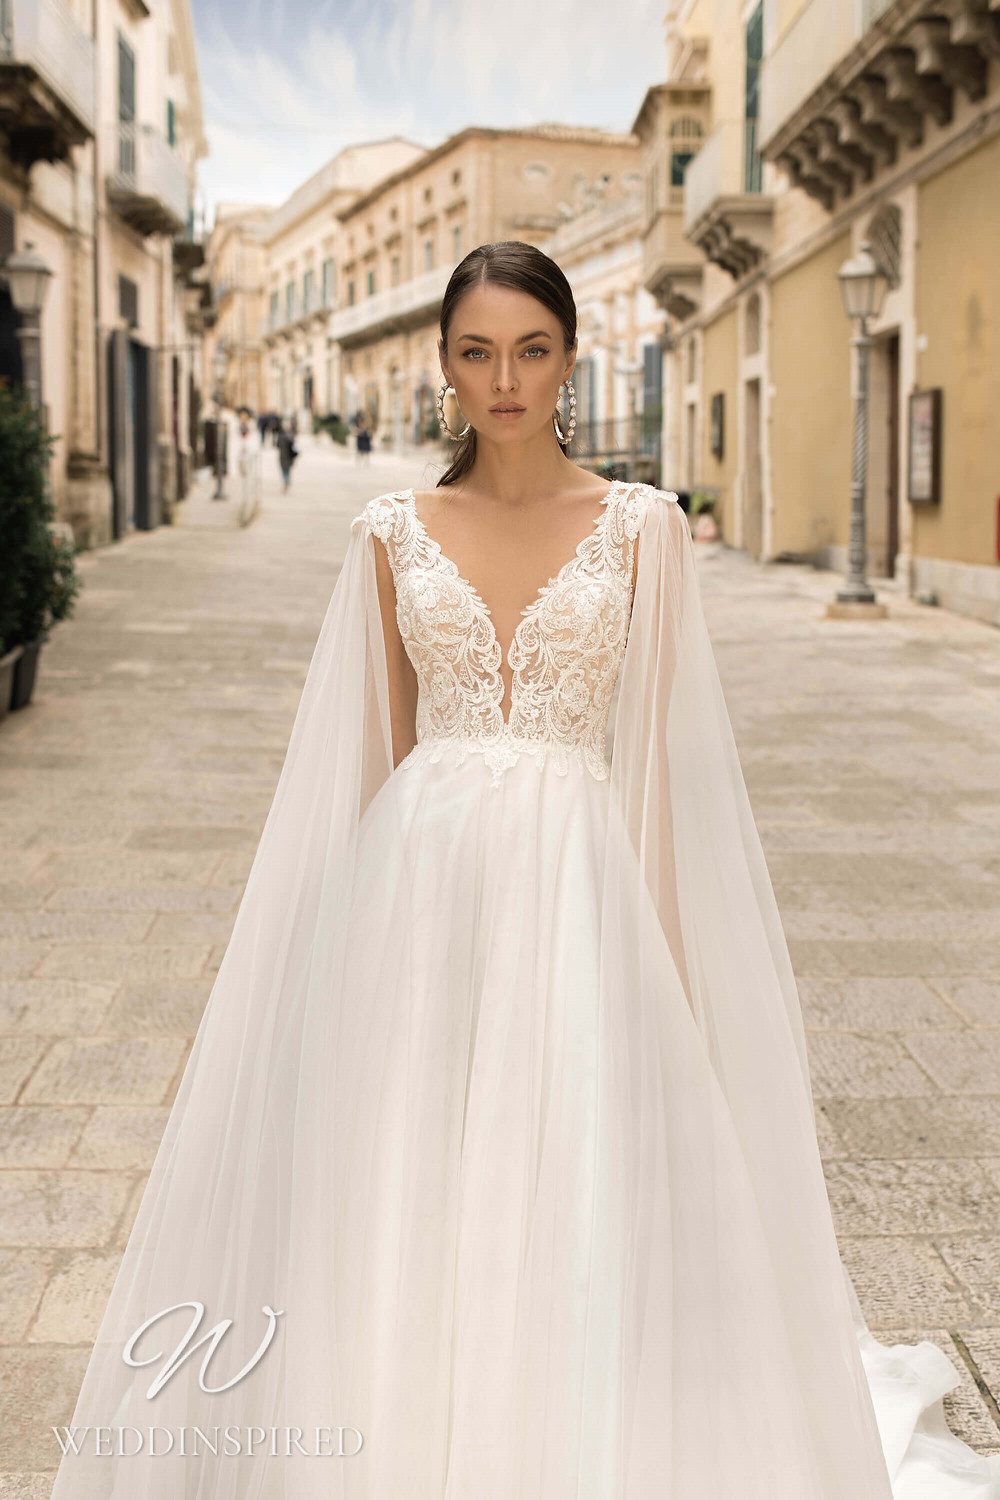 A Lussano 2021 boho lace and tulle A-line wedding dress